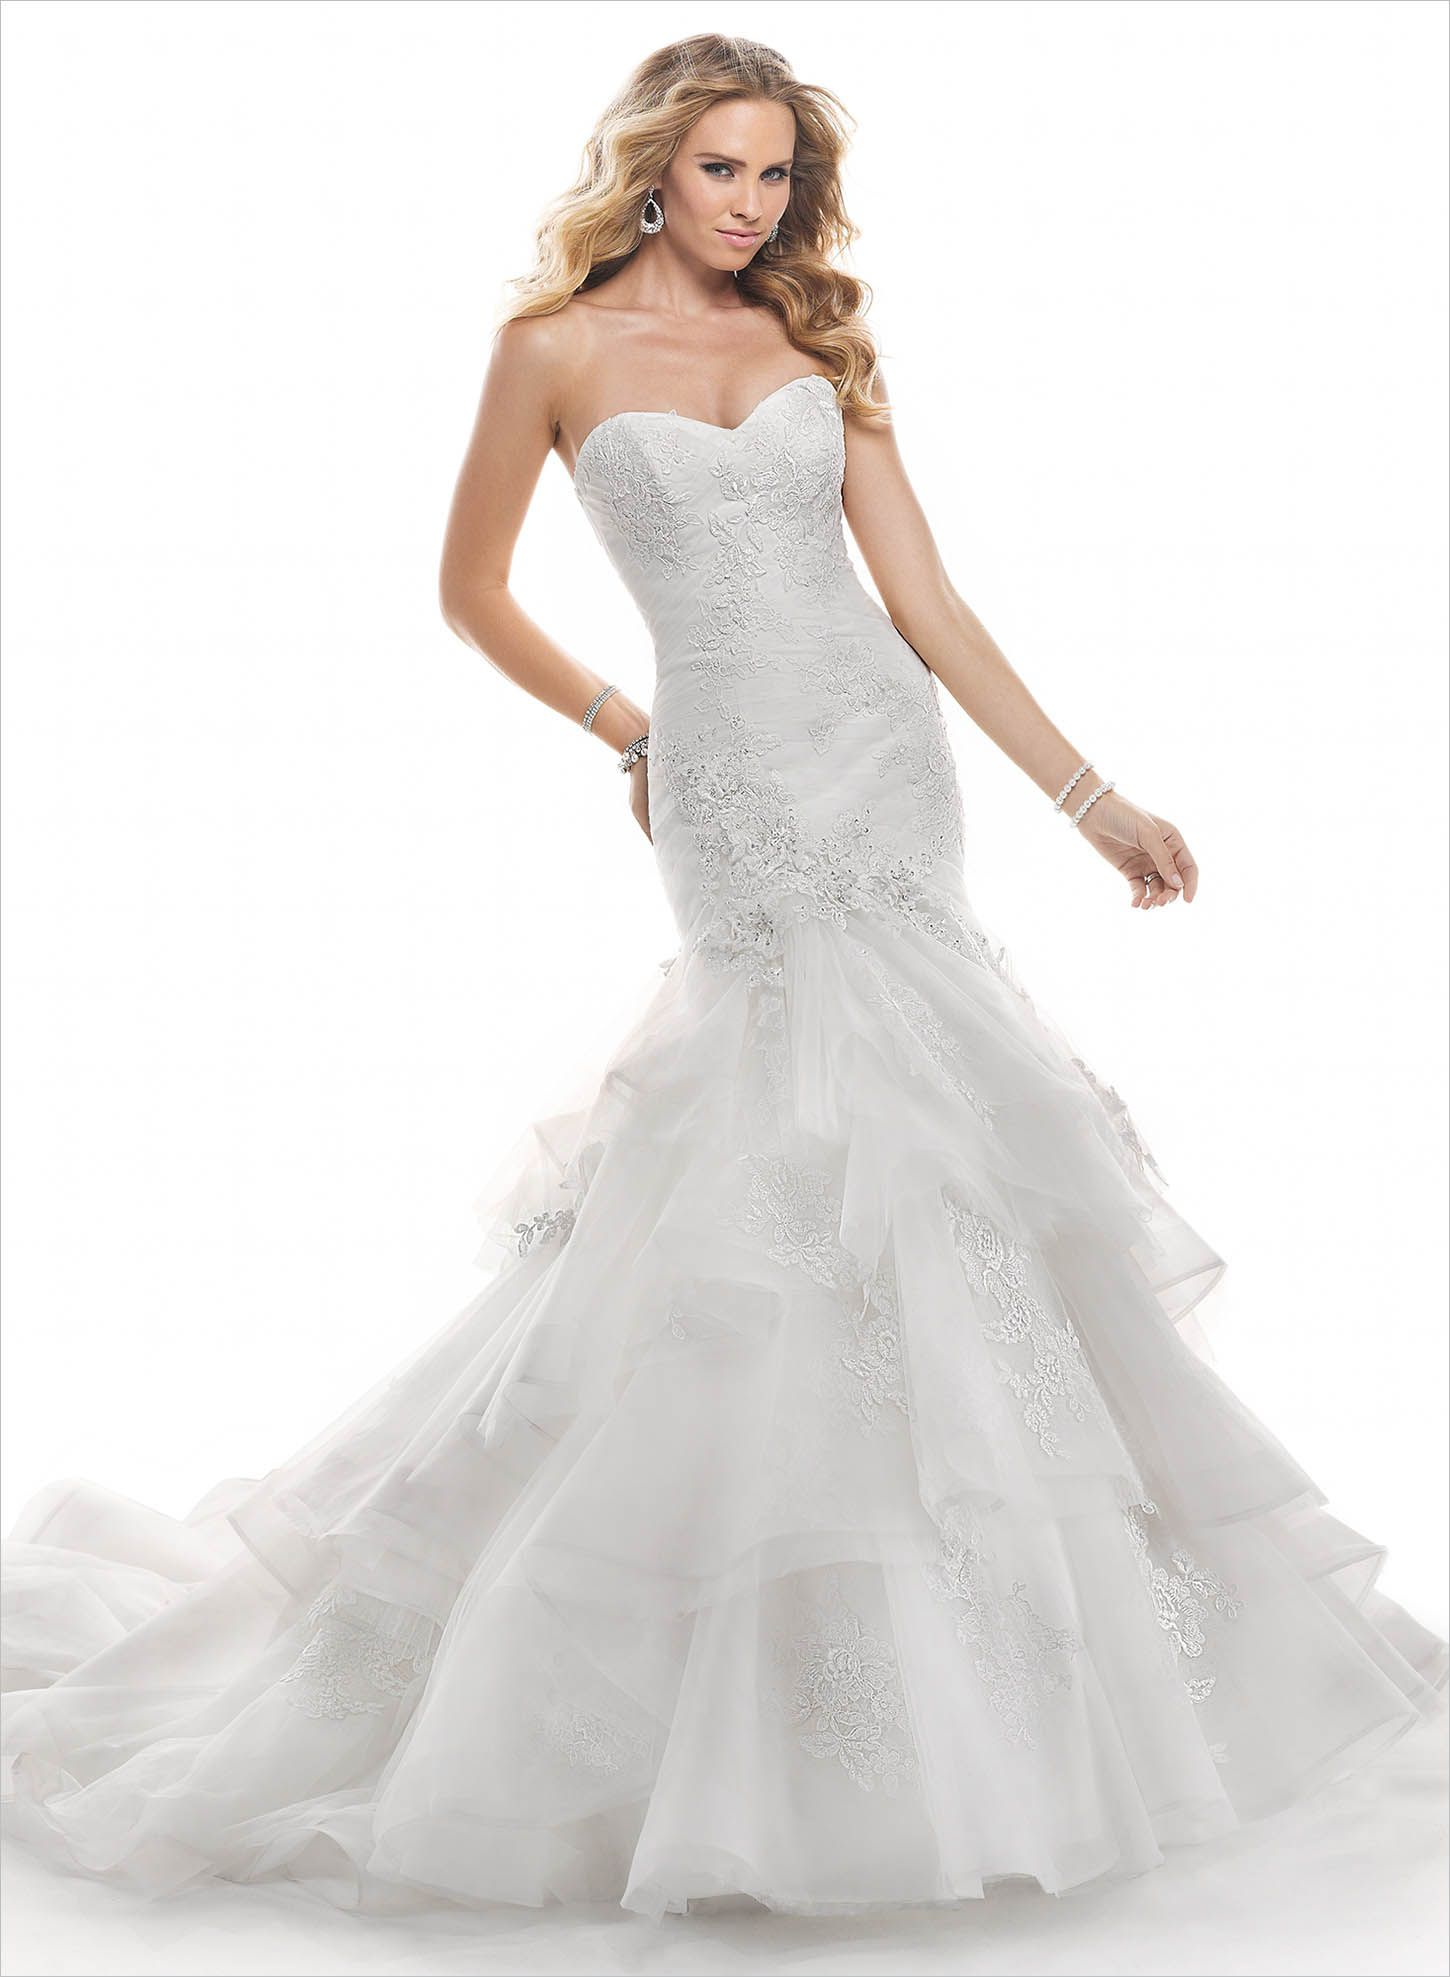 e7e98b195c05b4 ... is this corded embroidered and Chantilly lace on tulle over Chic Organza  gown, with a form fitting ruched bodice and cascading layered skirt.